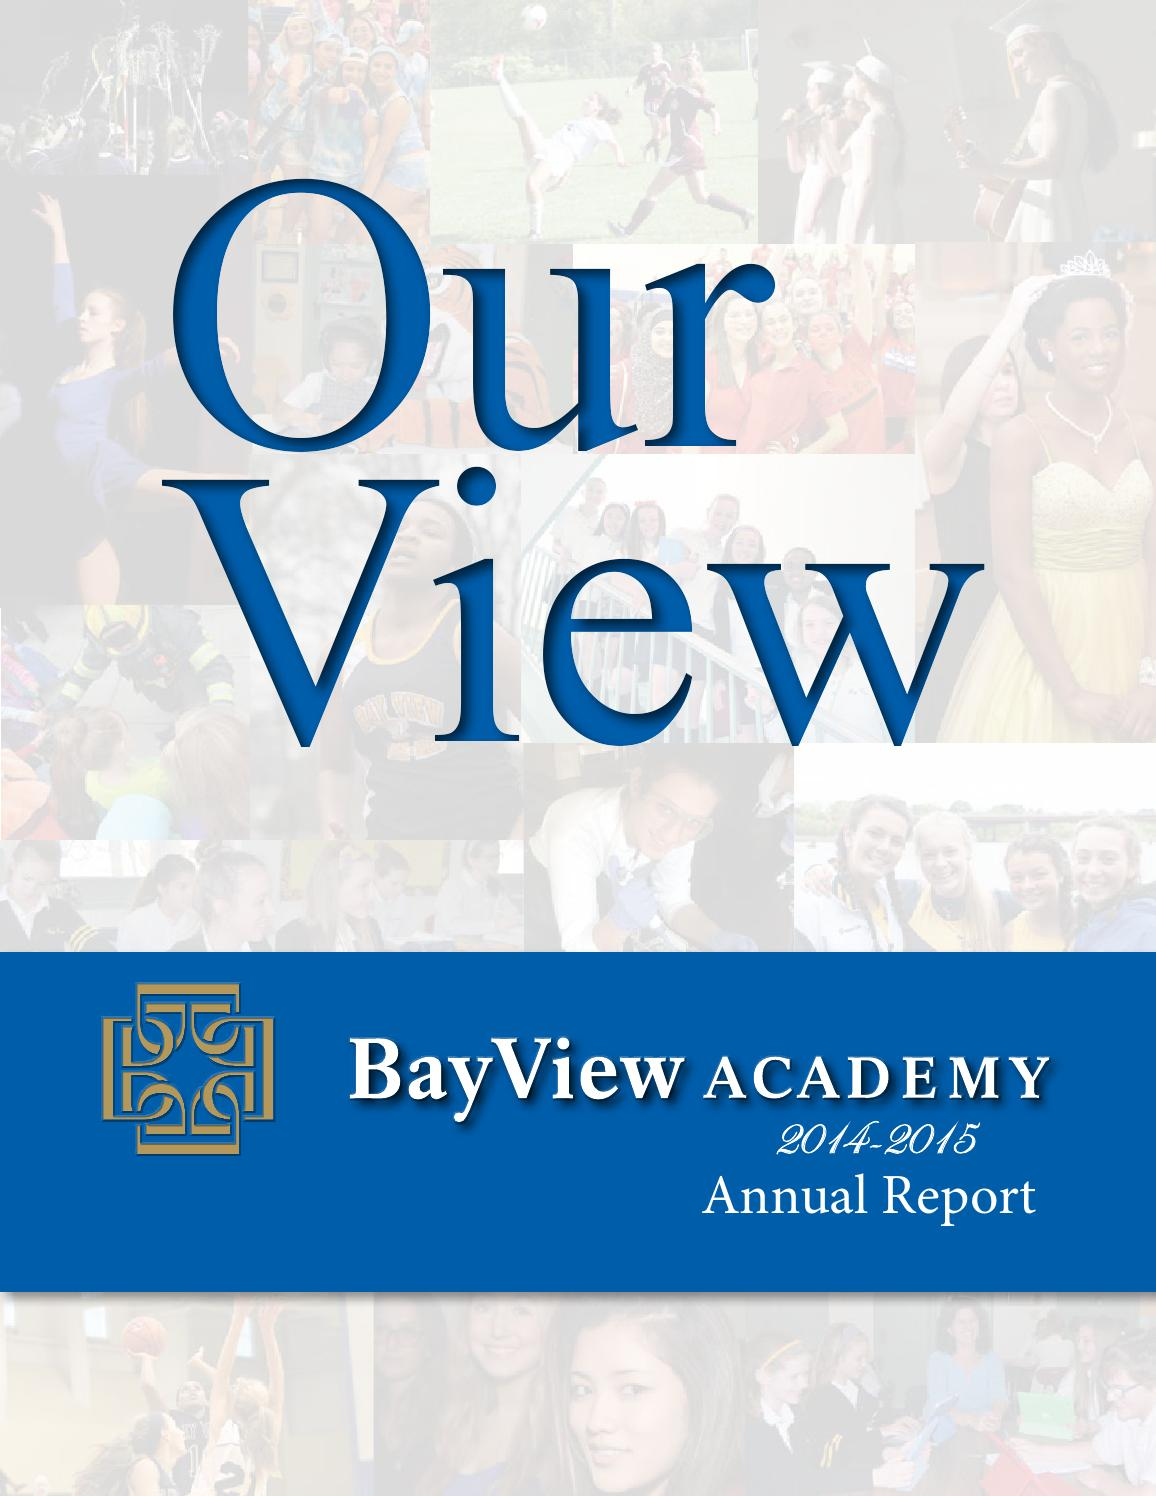 bay view academy 2014 2015 annual report by lia del sesto mcalpine bay view academy 2014 2015 annual report by lia del sesto mcalpine issuu